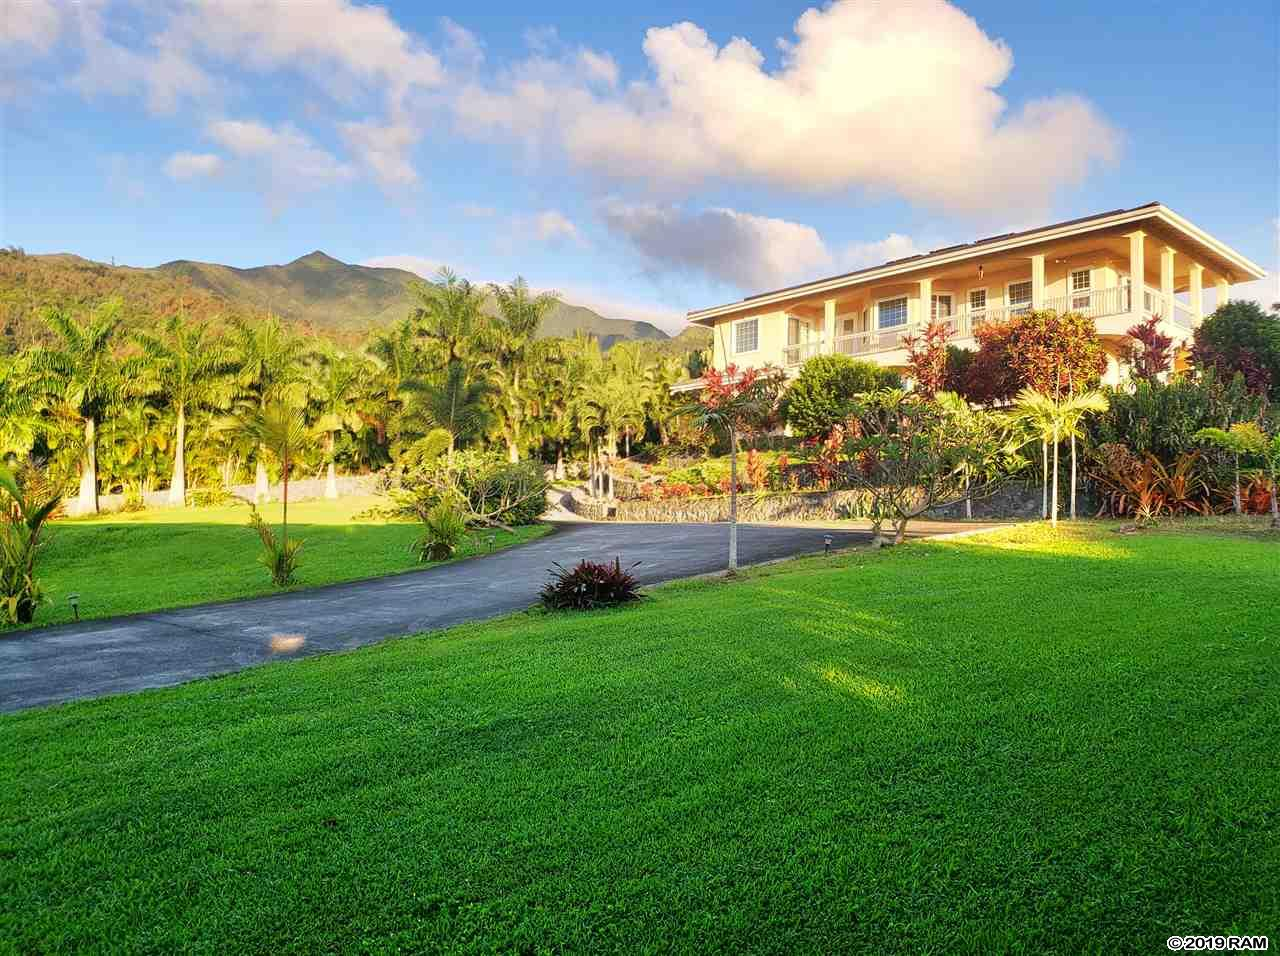 2284 Kamaile St in Wailuku Country Estates